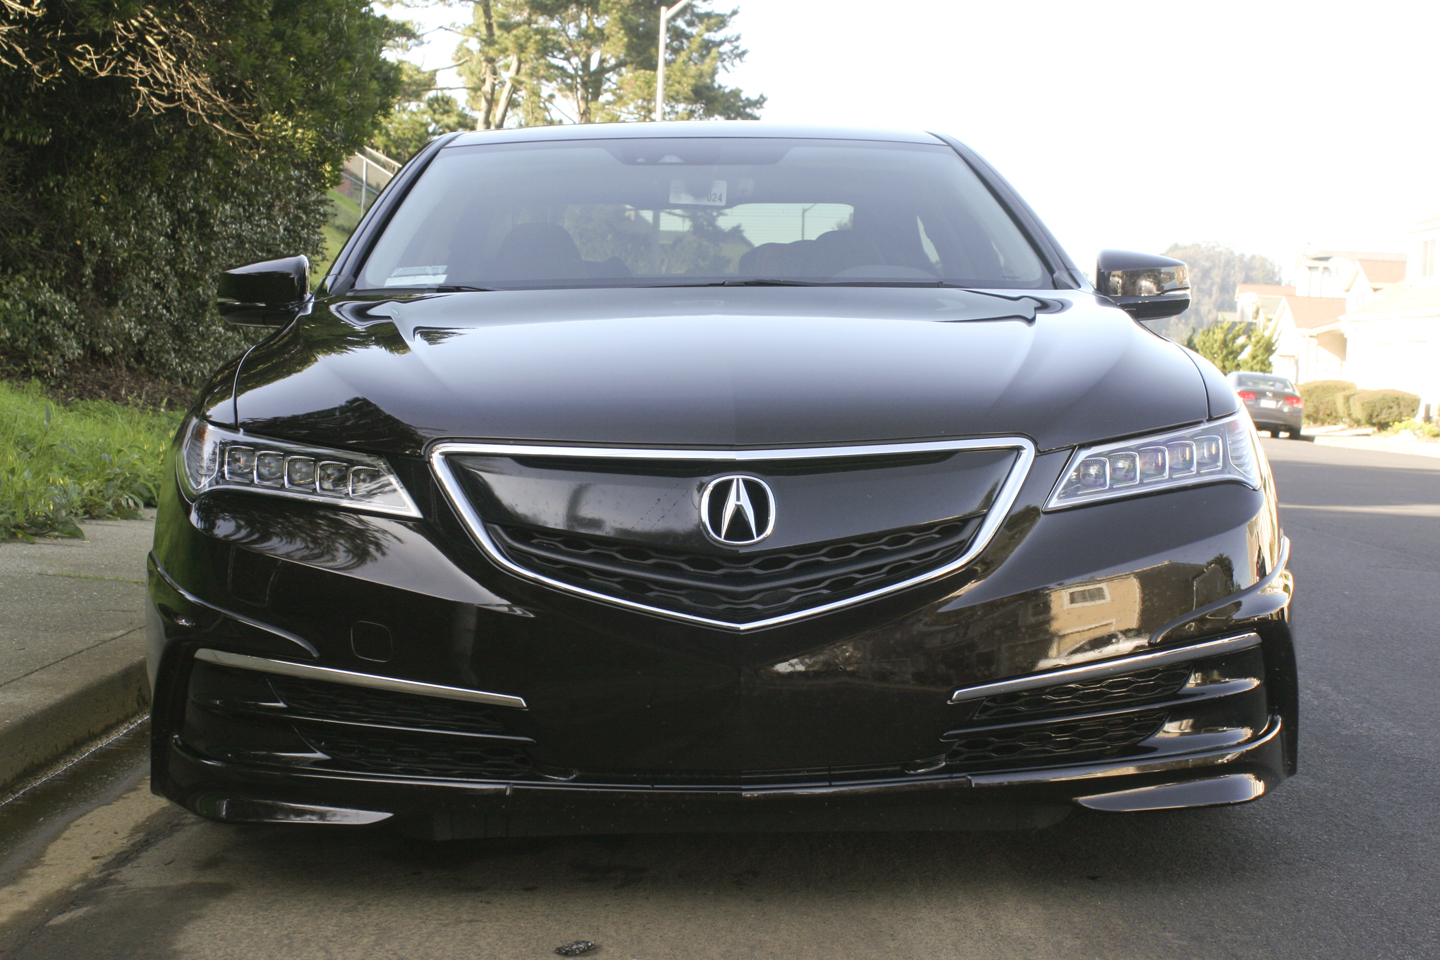 hight resolution of 2016 acura tlx v6 fwd tech 9733 9733 location